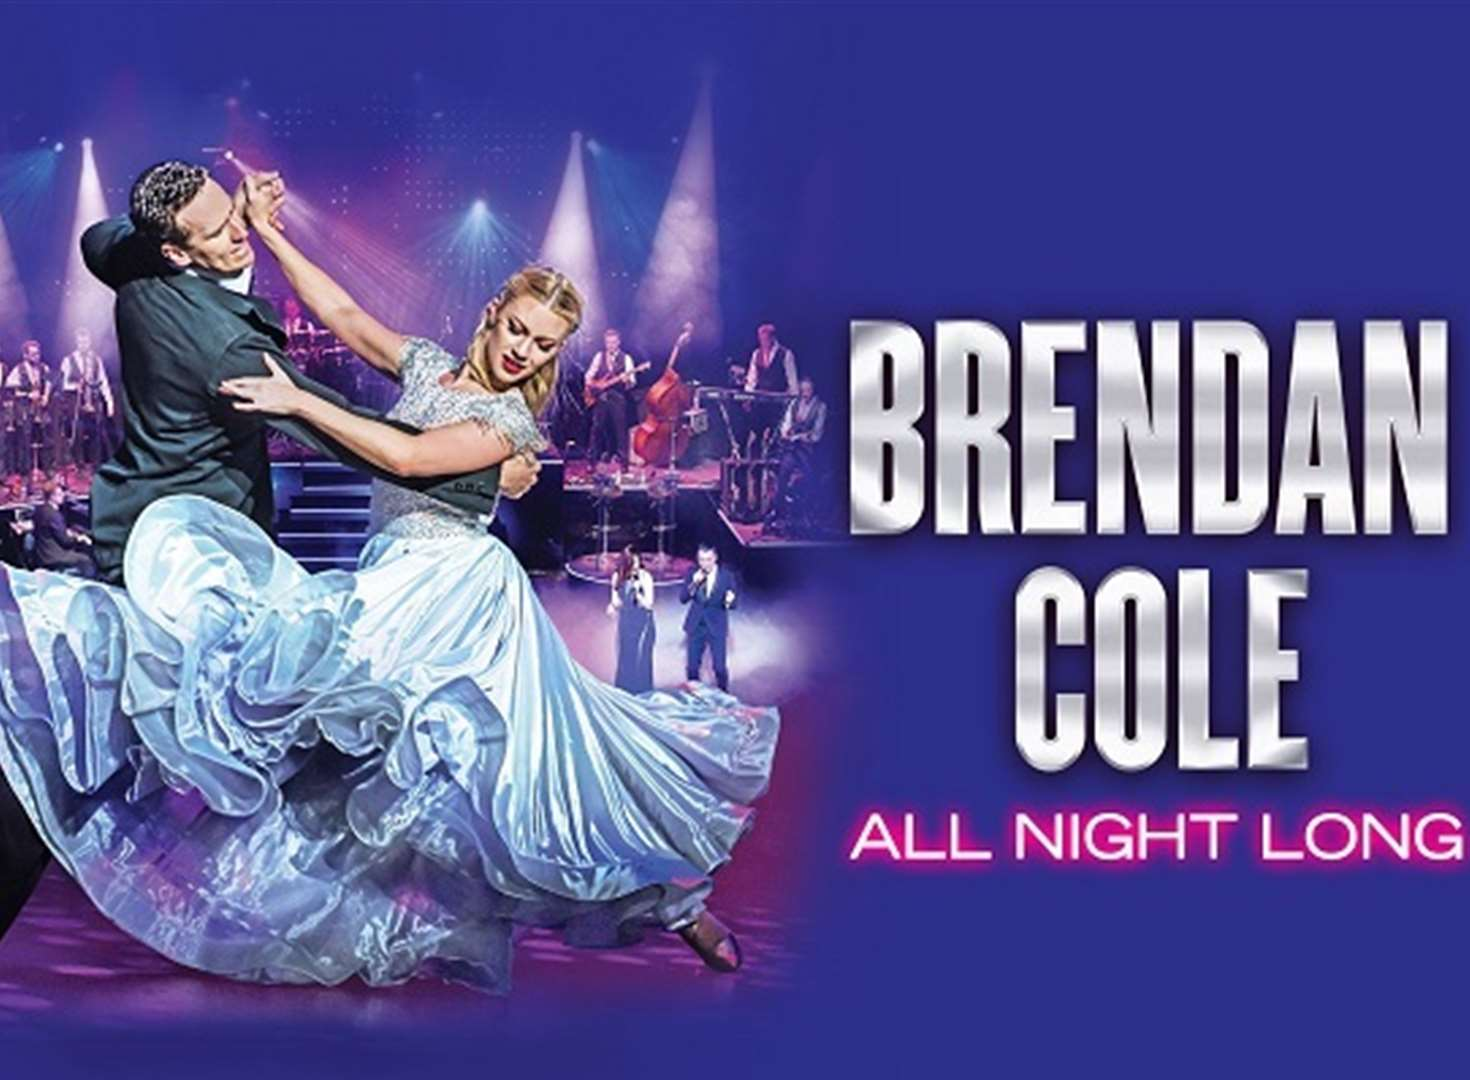 Strictly's Brendan talks All Night Long with kmfm